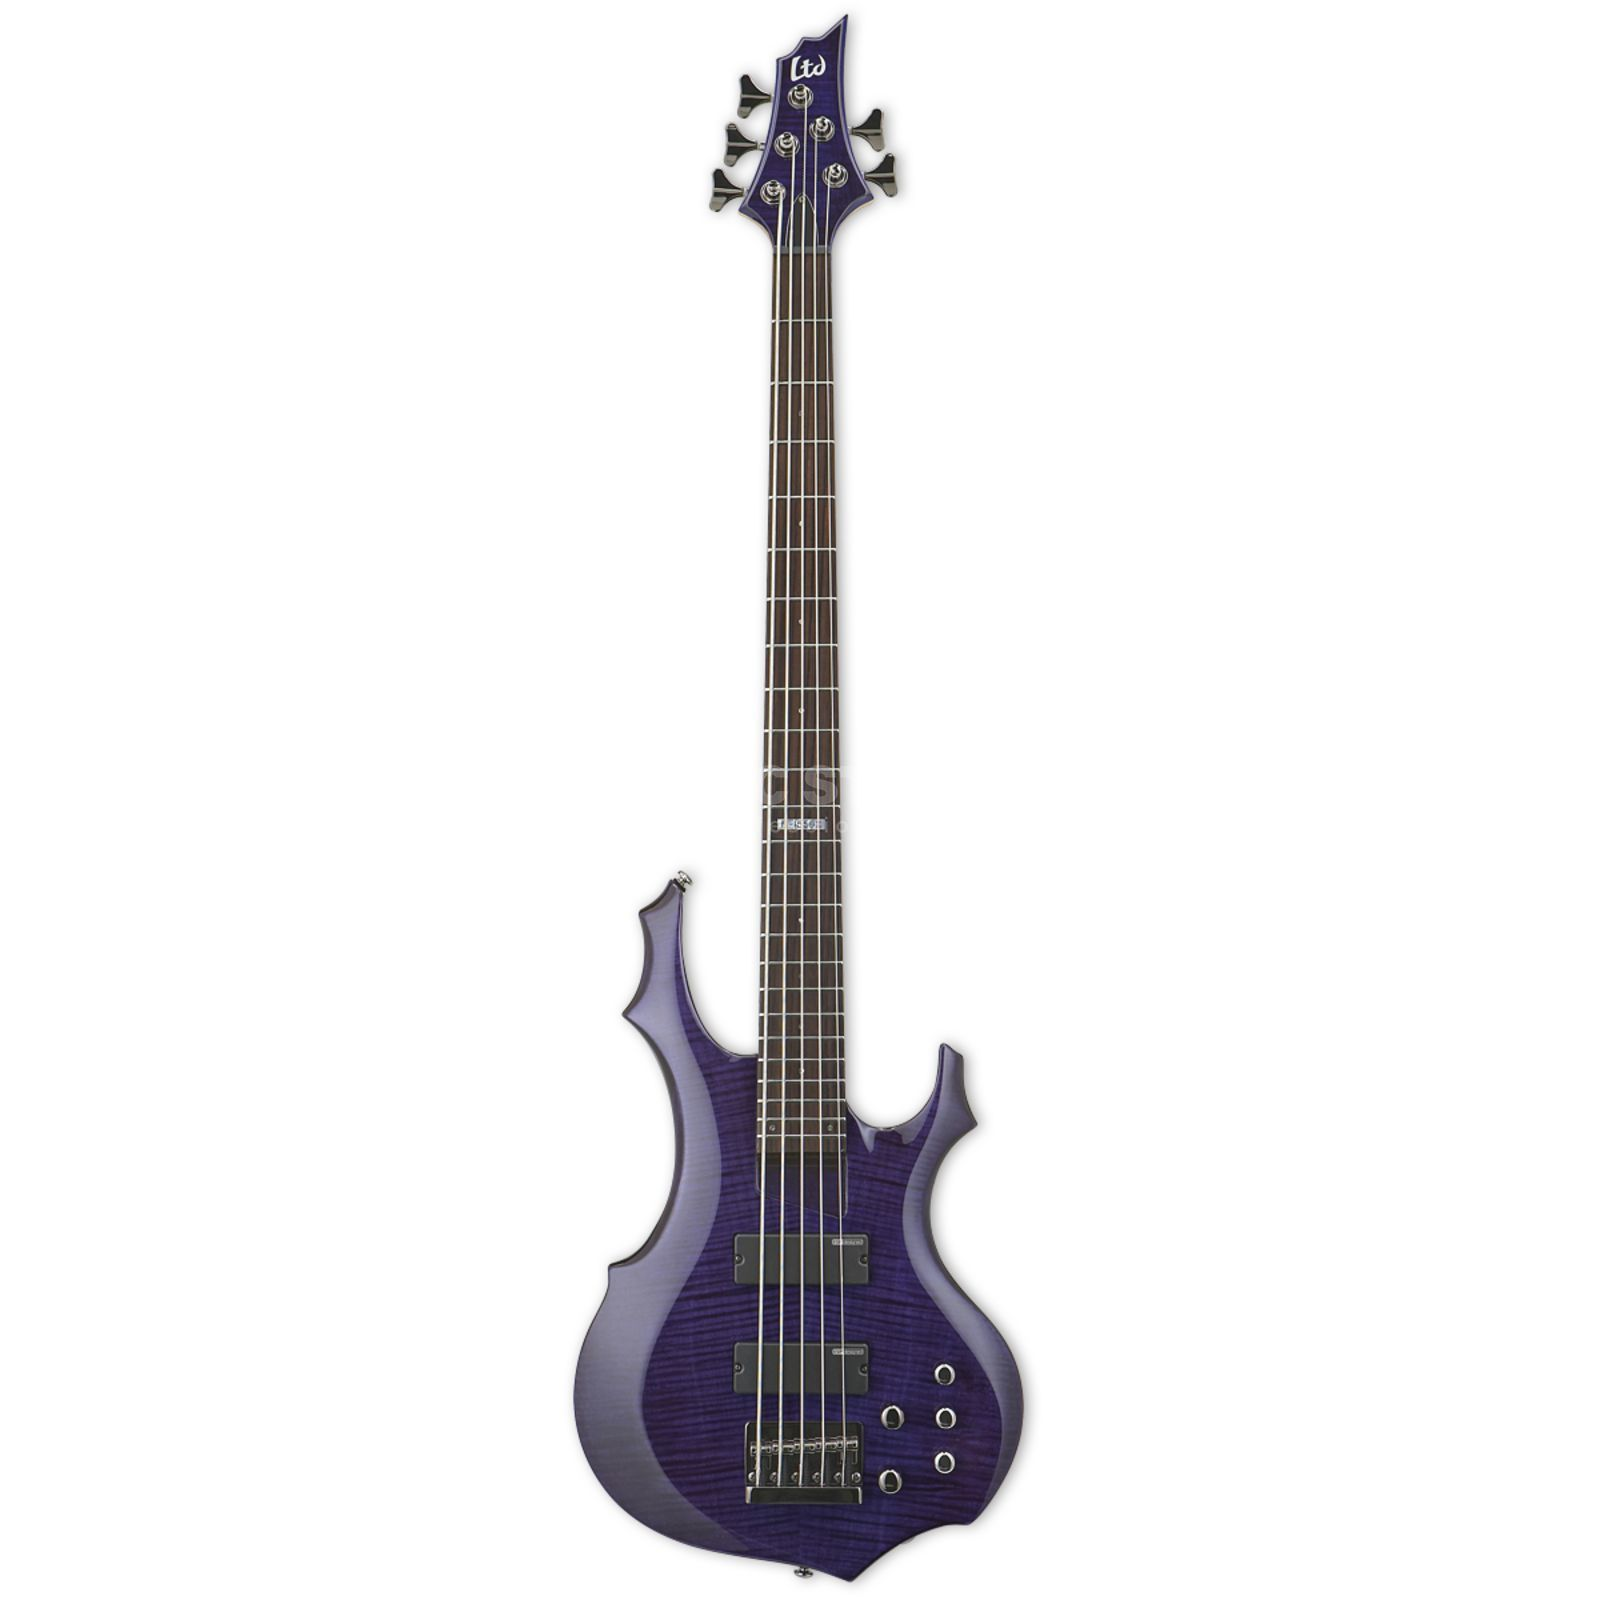 ESP LTD F-155DX Electric Bass Guit ar, Dark See Thru Purple   Produktbillede